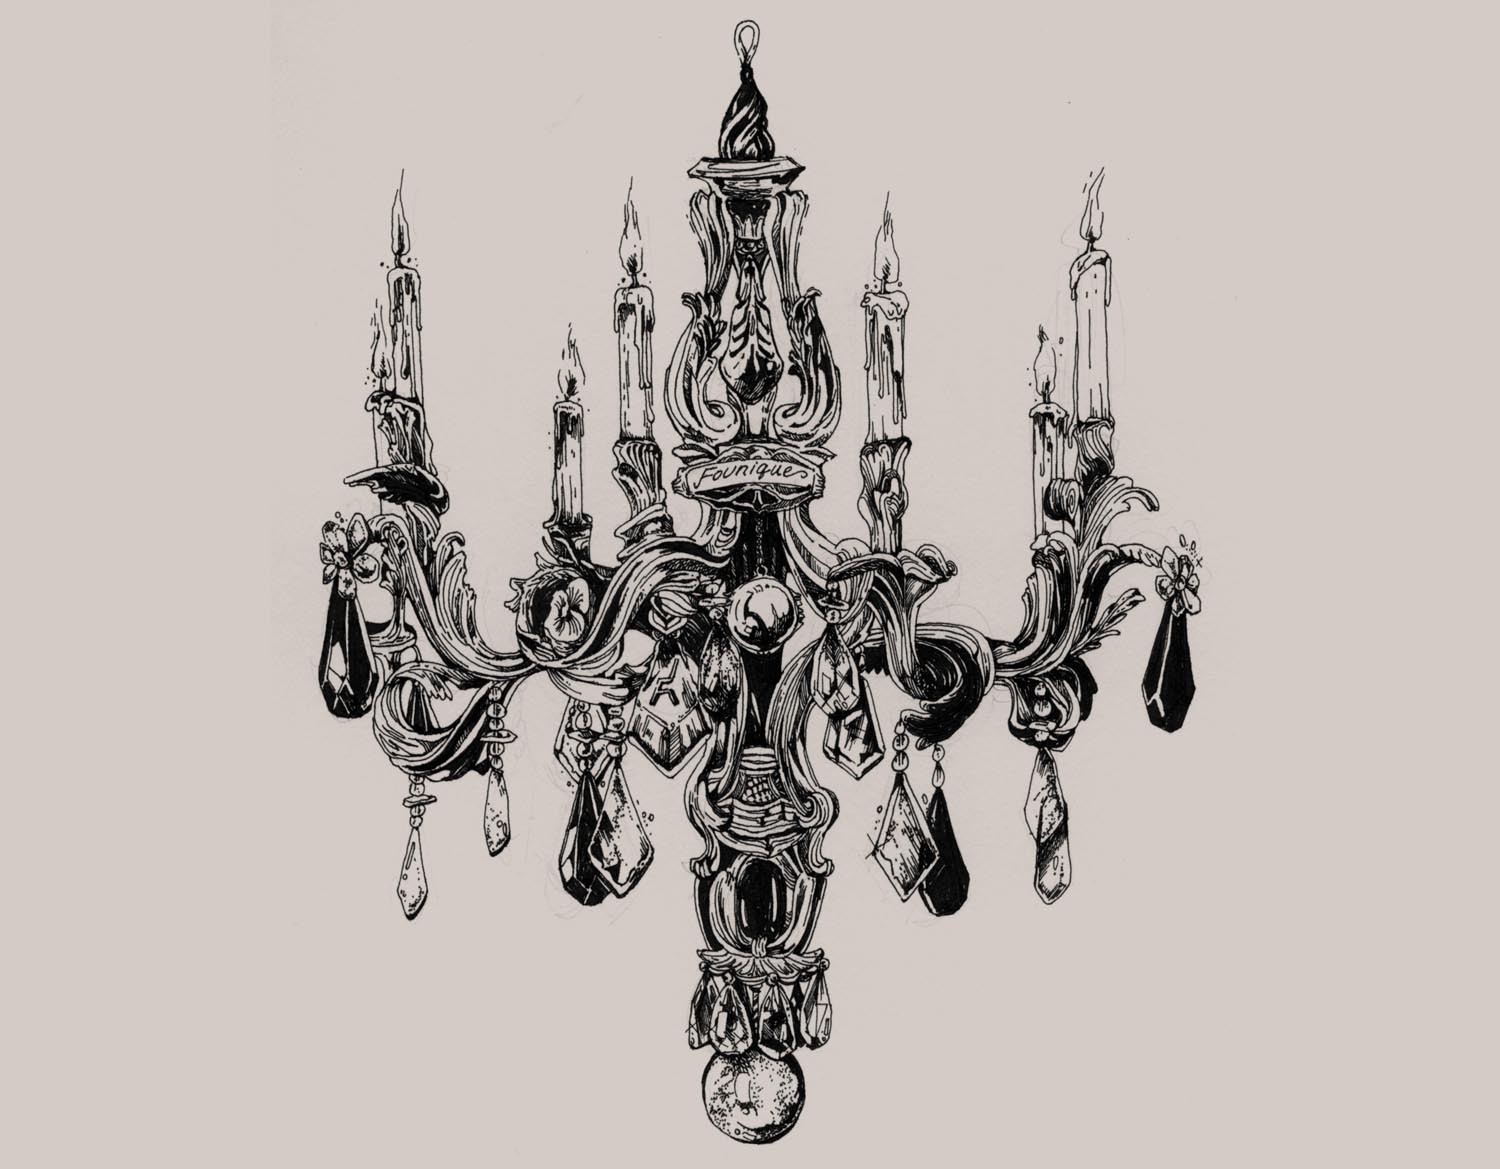 1500x1169 Chandelier Drawing For Founique. My Illustrations